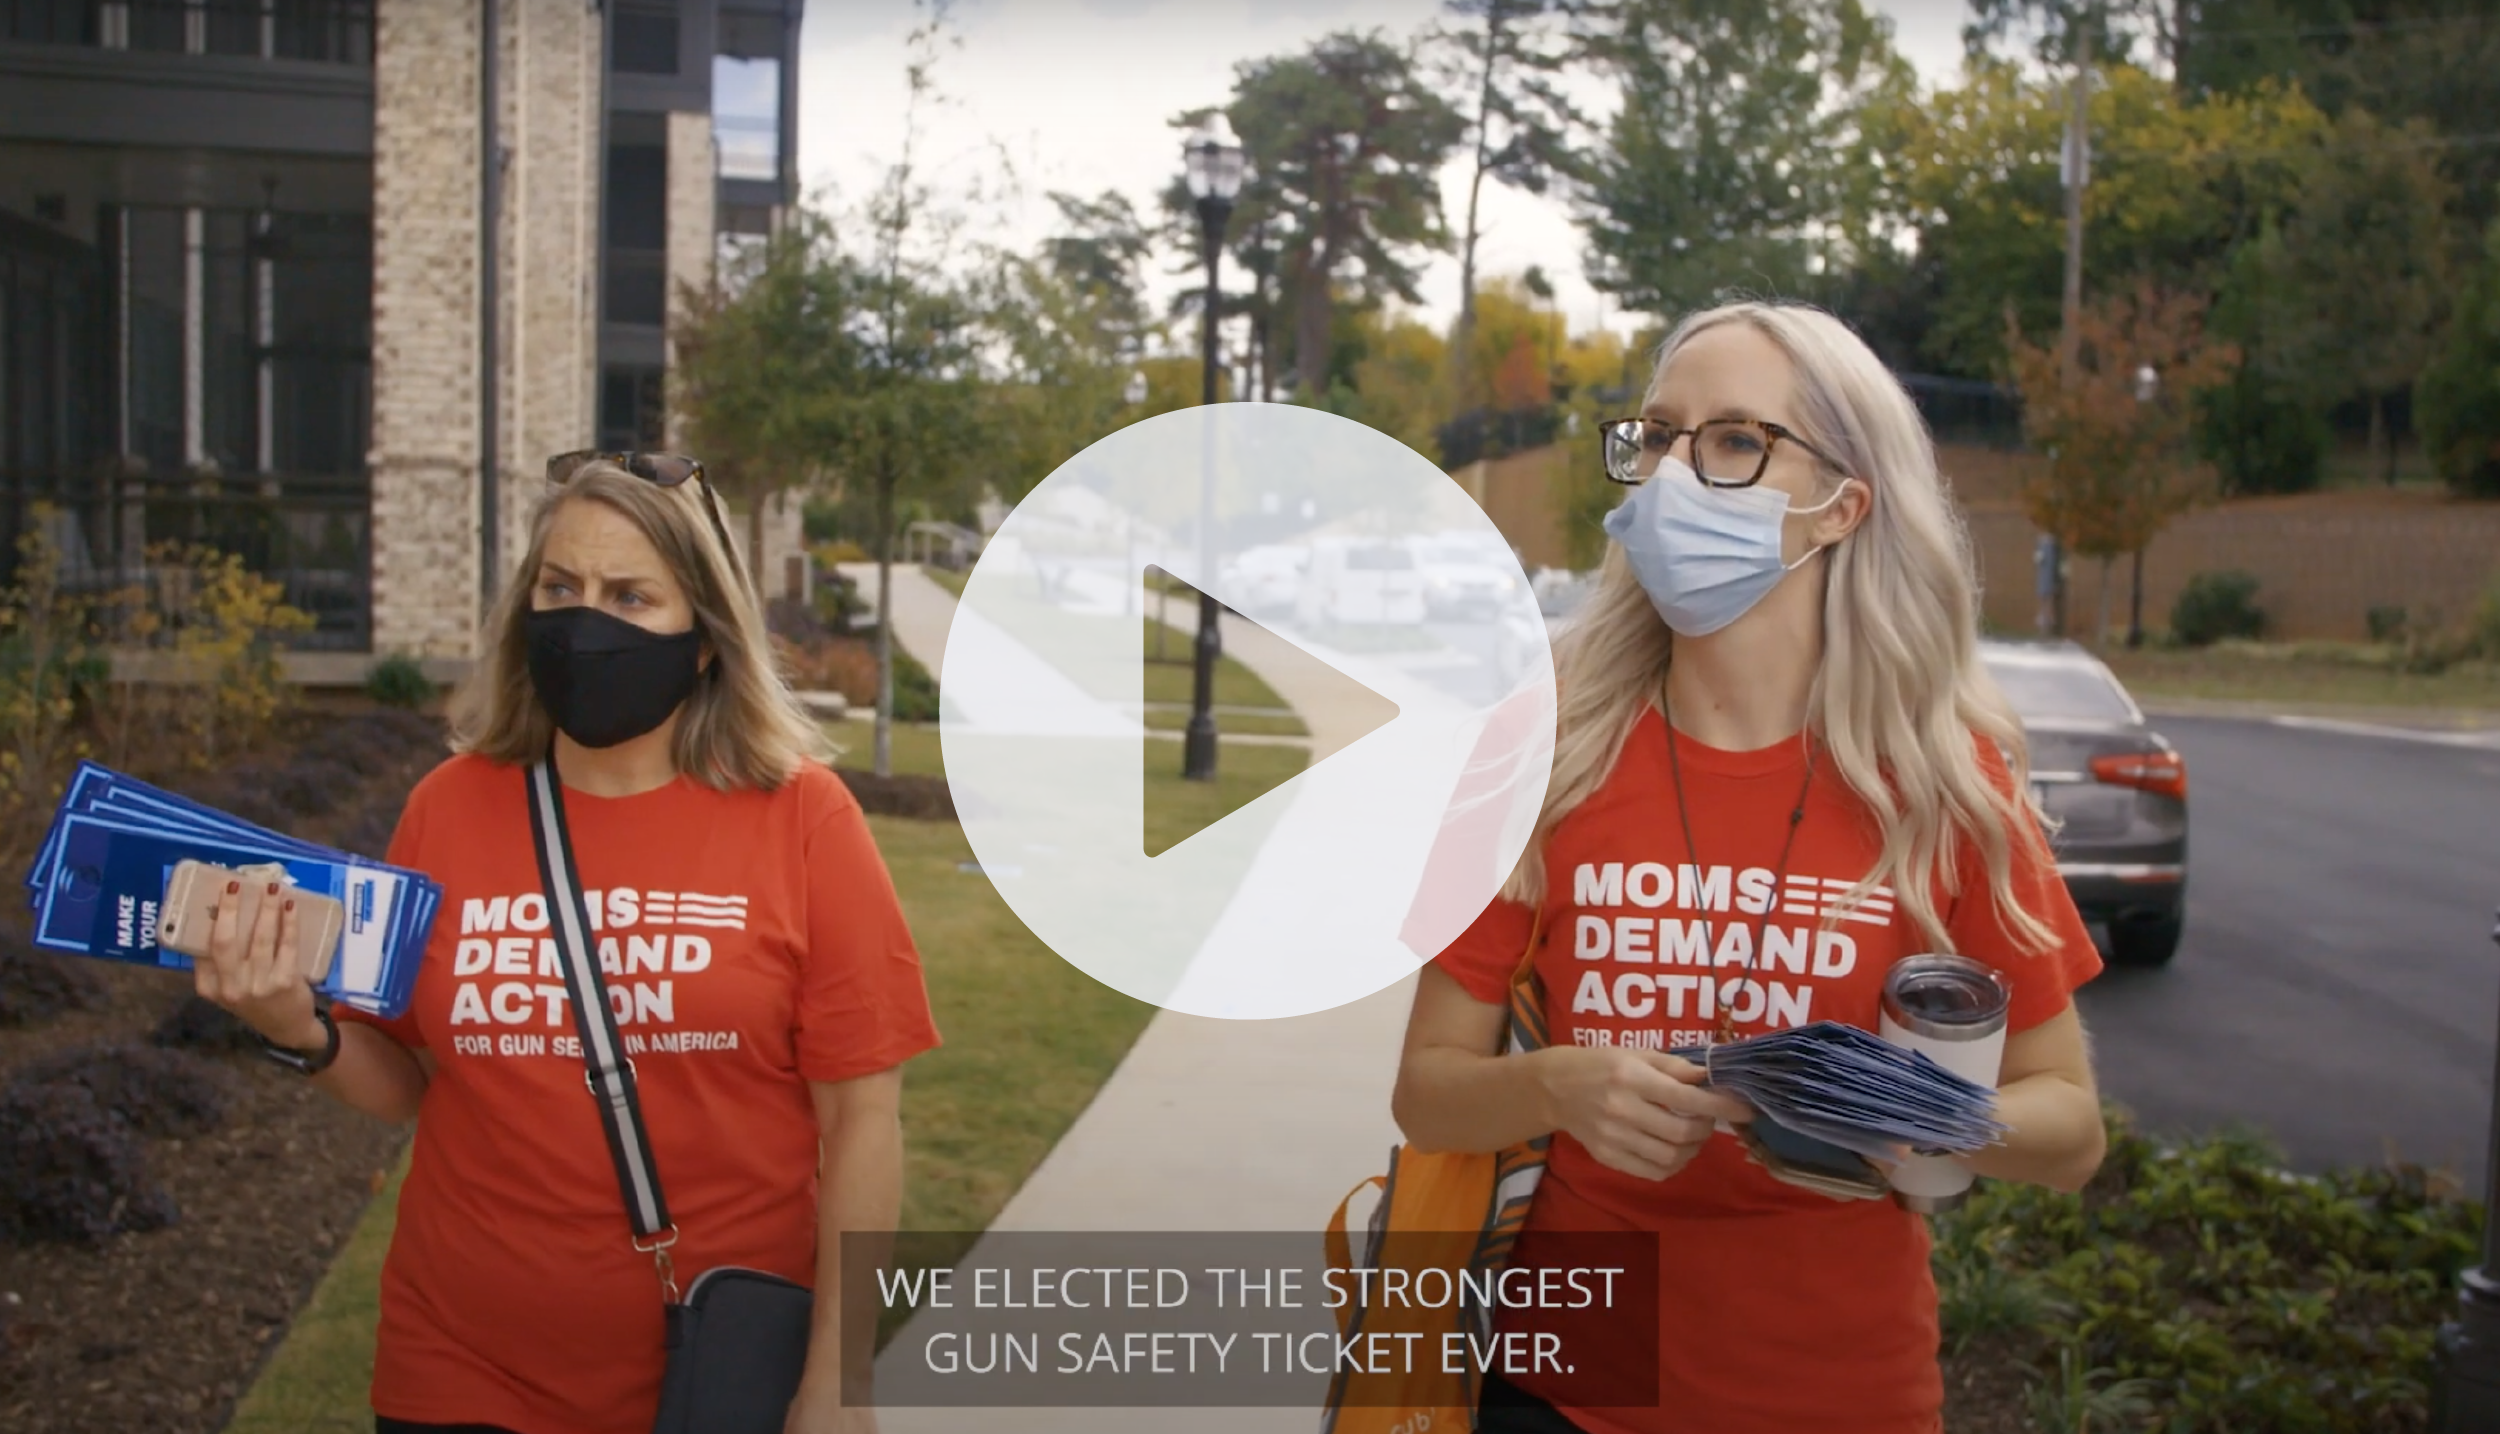 We elected the strongest gun safety ticket ever. Watch the video.